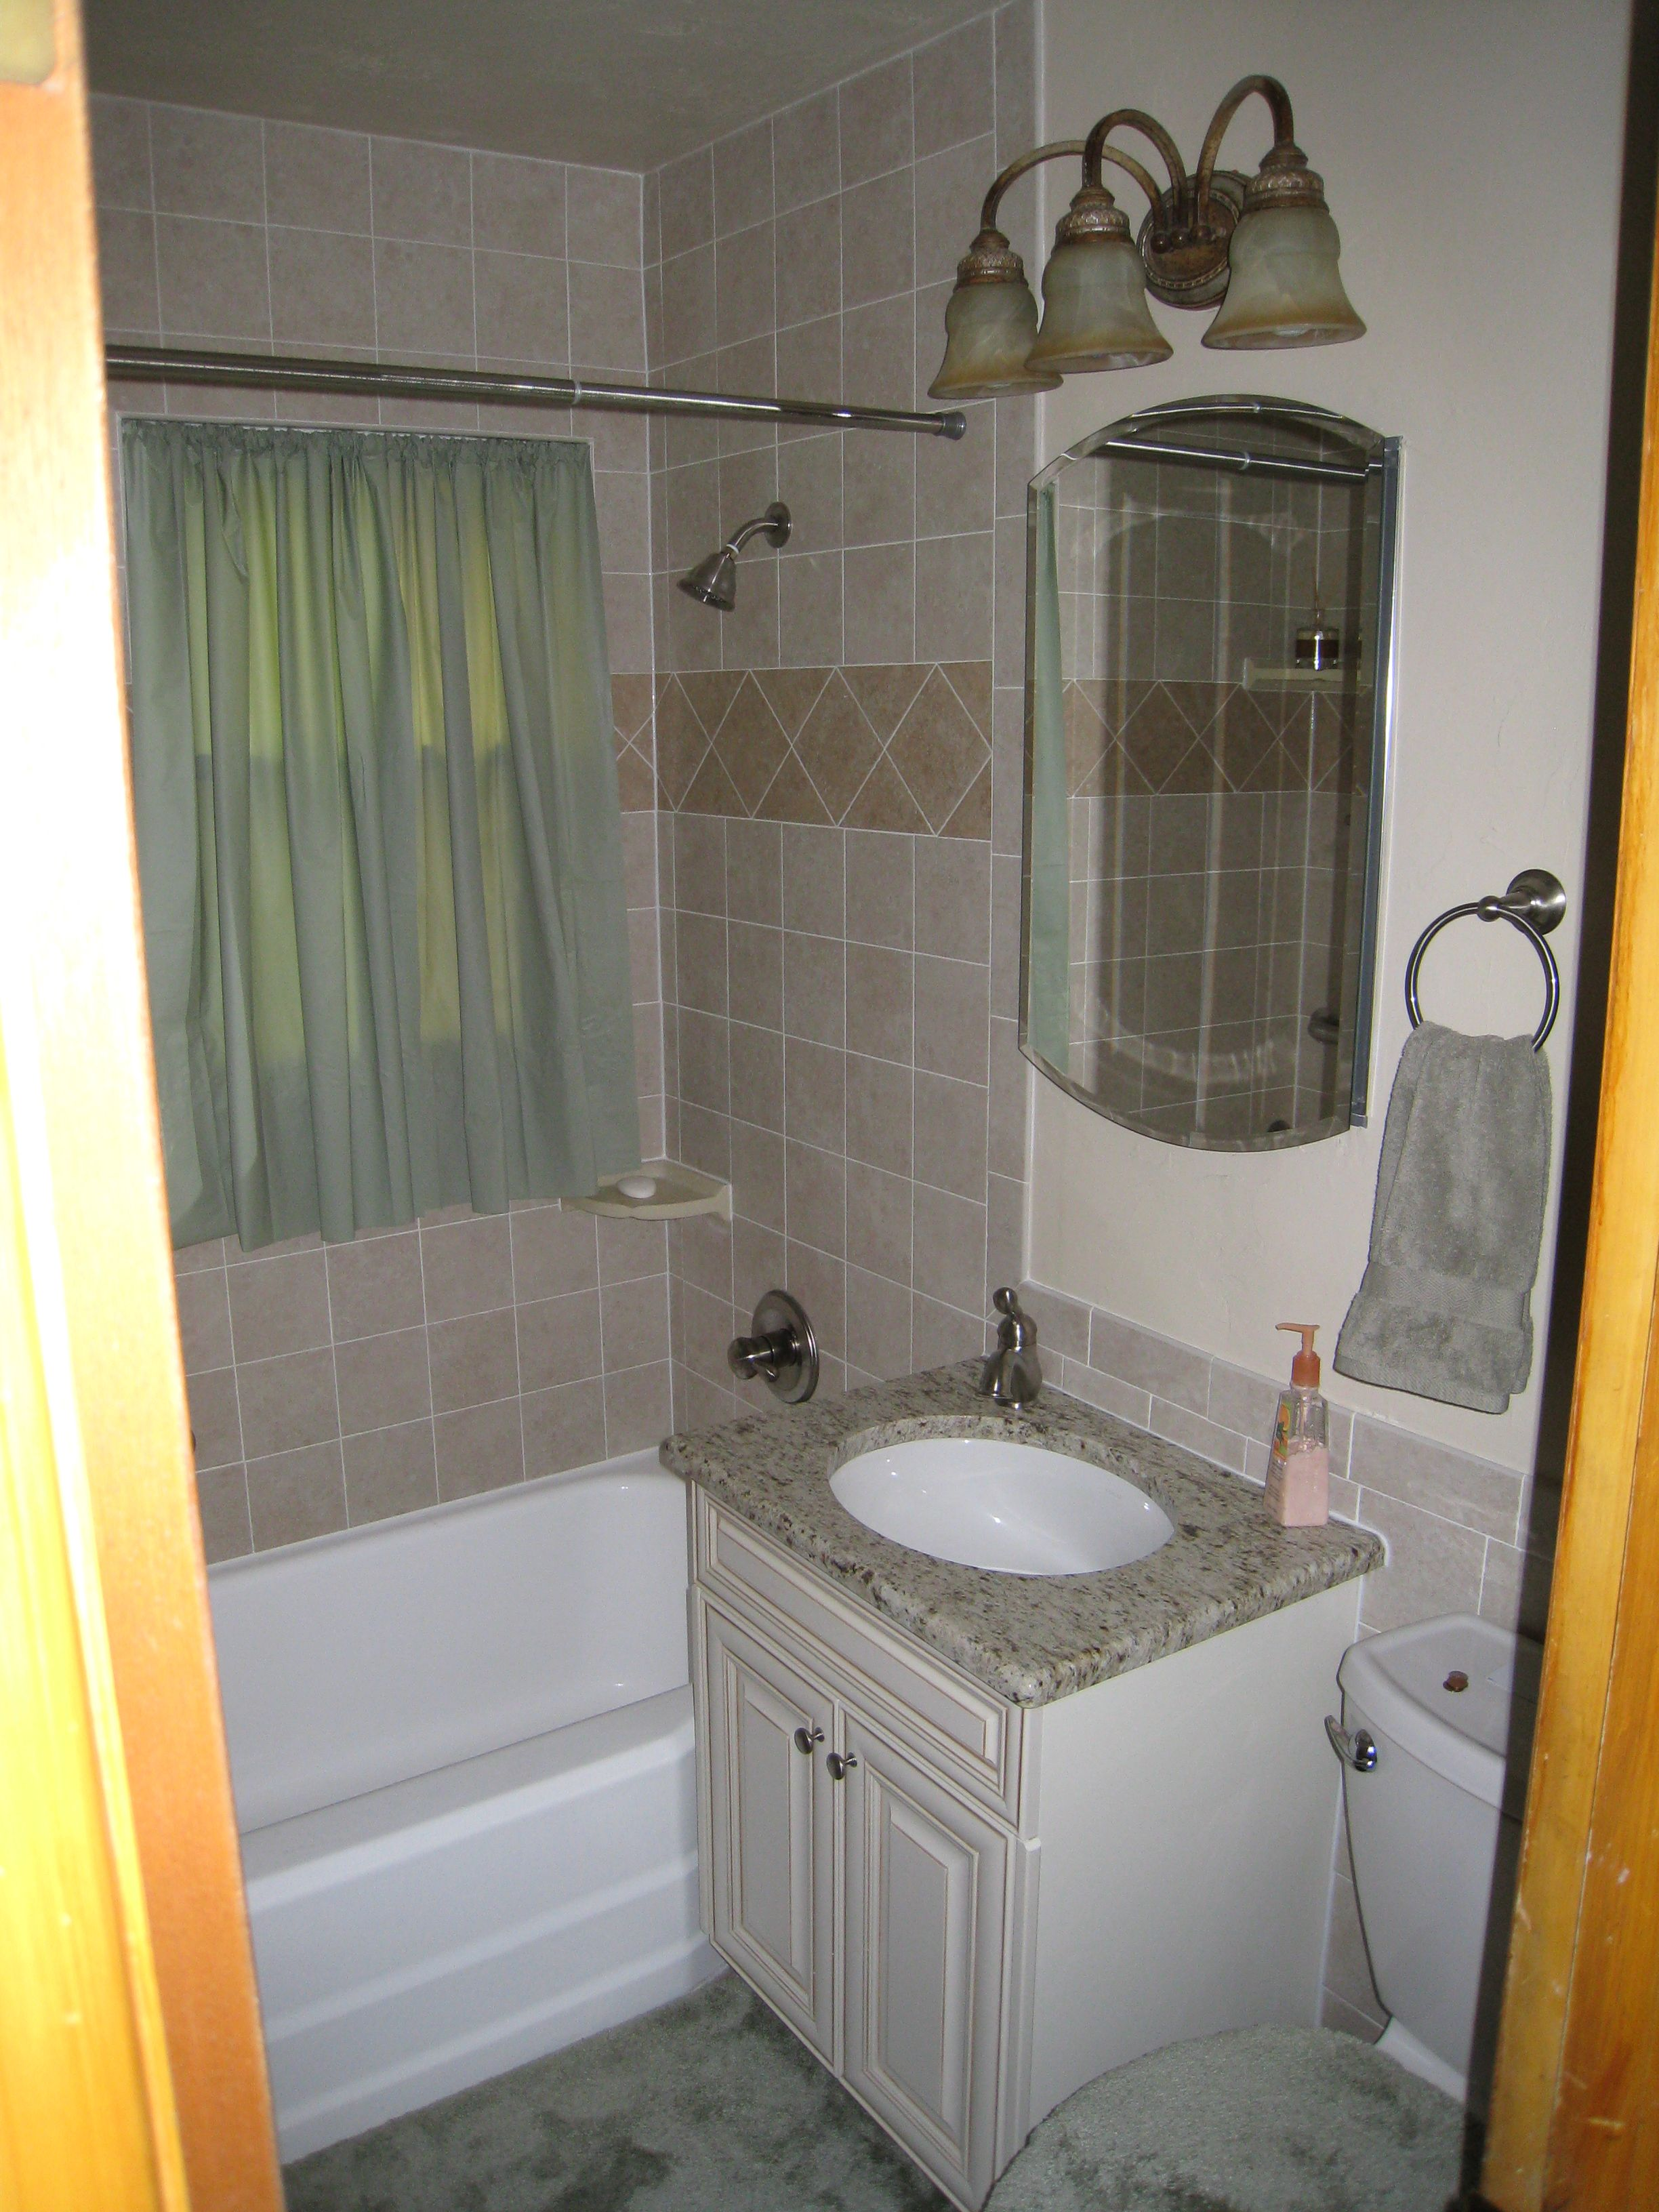 Bathroom Remodeling Wichita Ks bath remodel, new tile in tub area, wainscott, floor, new vanity